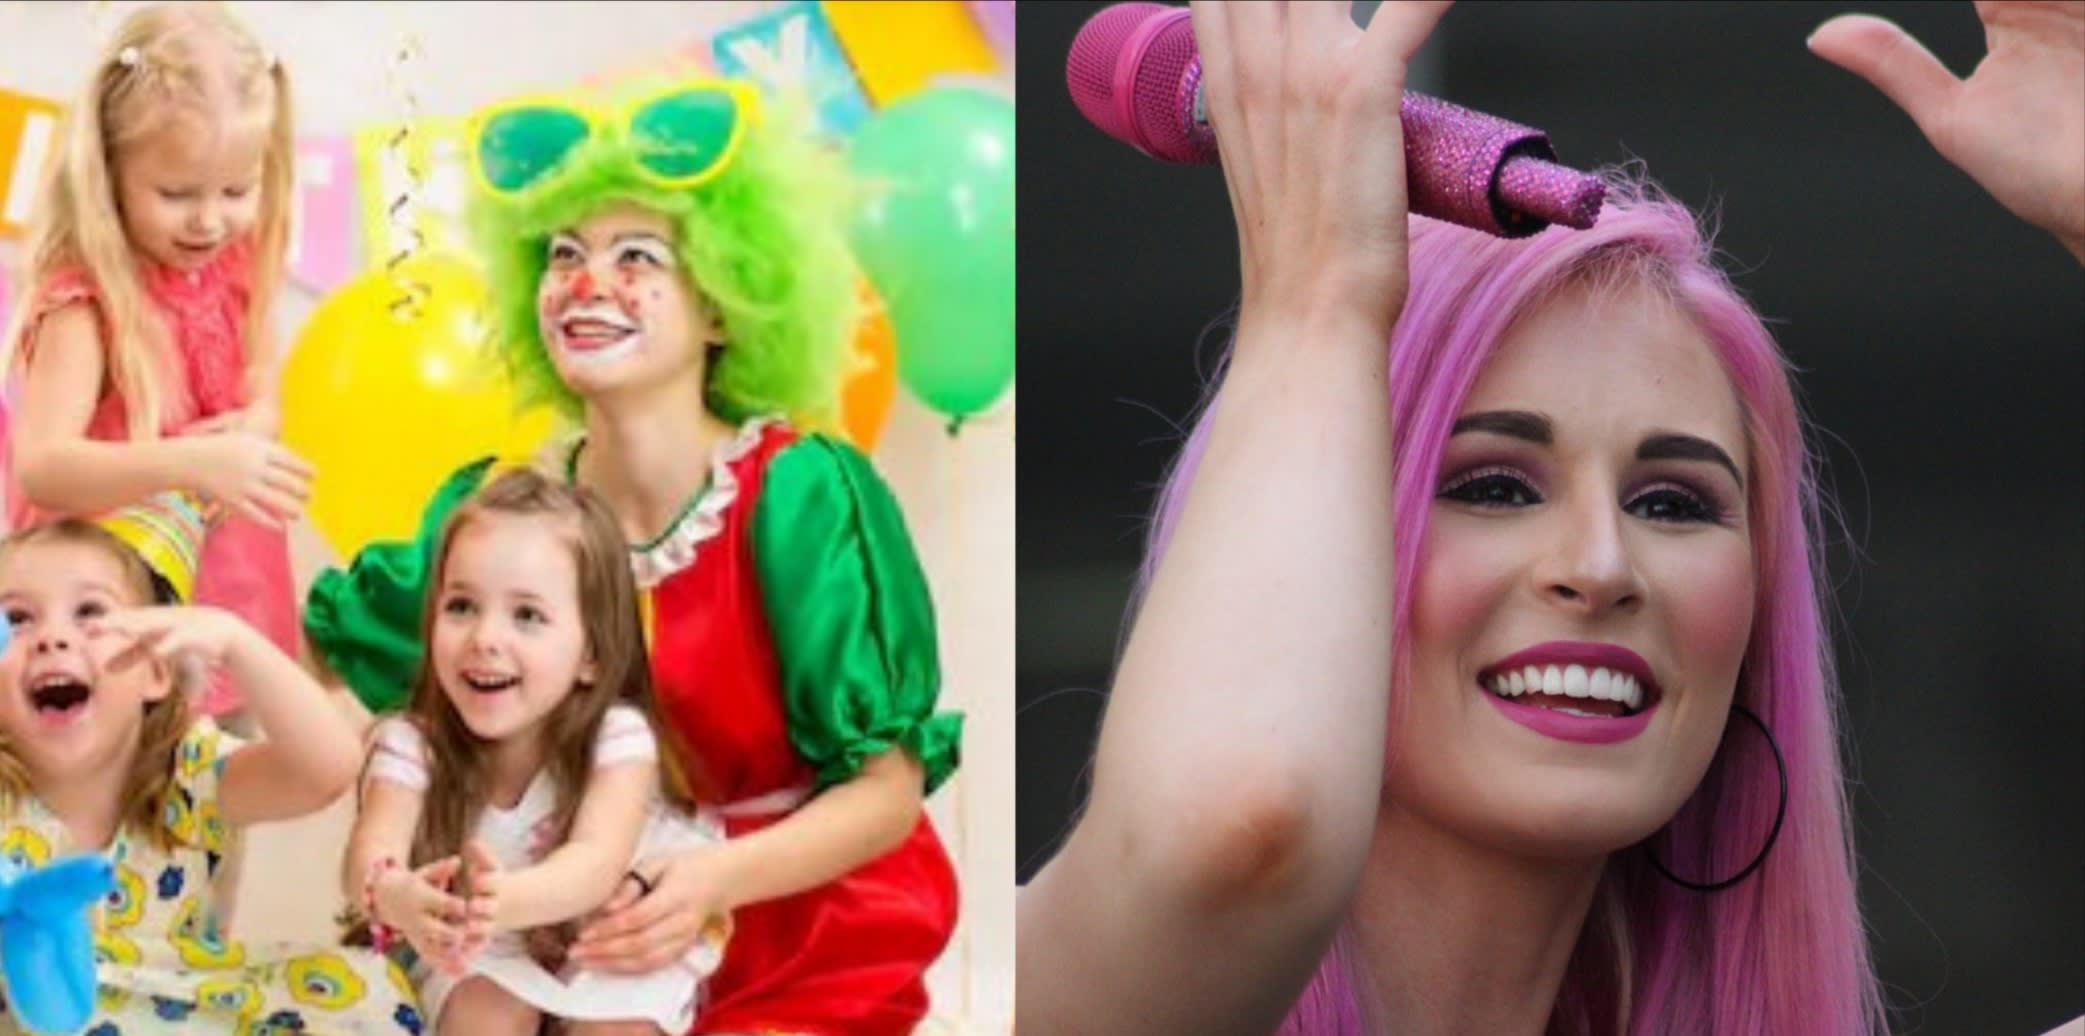 Animadores/as Infantiles y Eventos